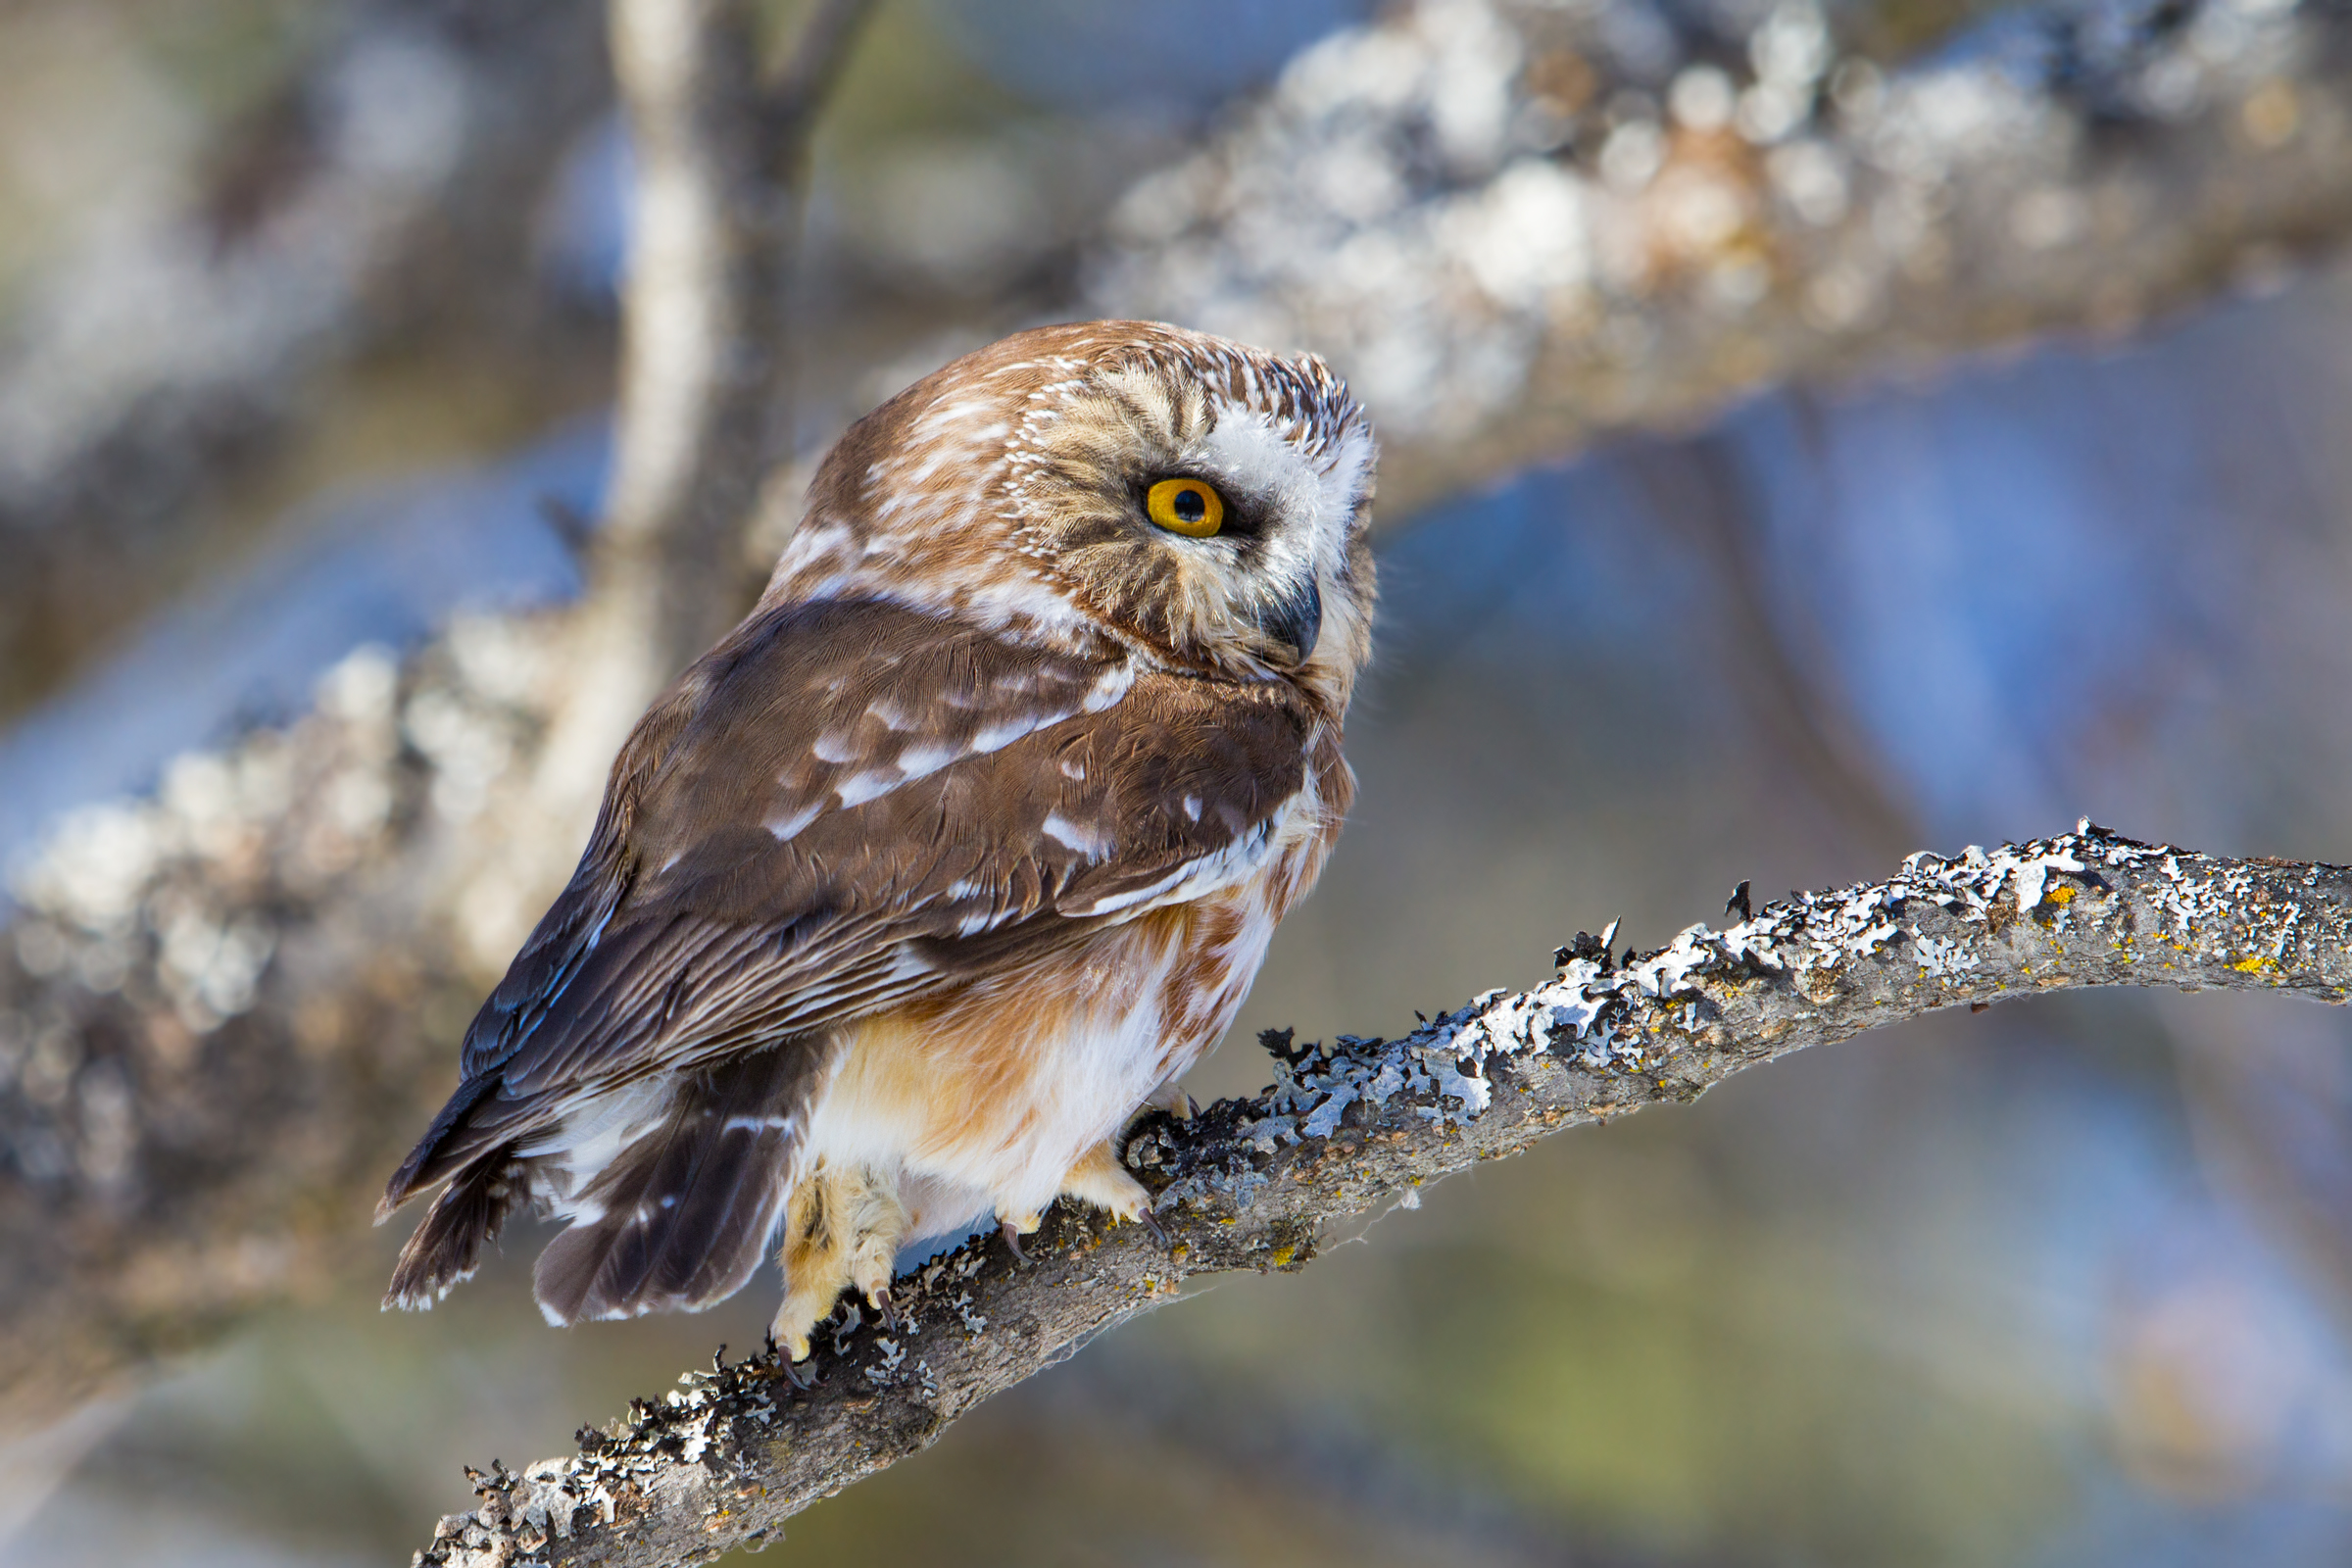 Released Northern Saw-whet Owl